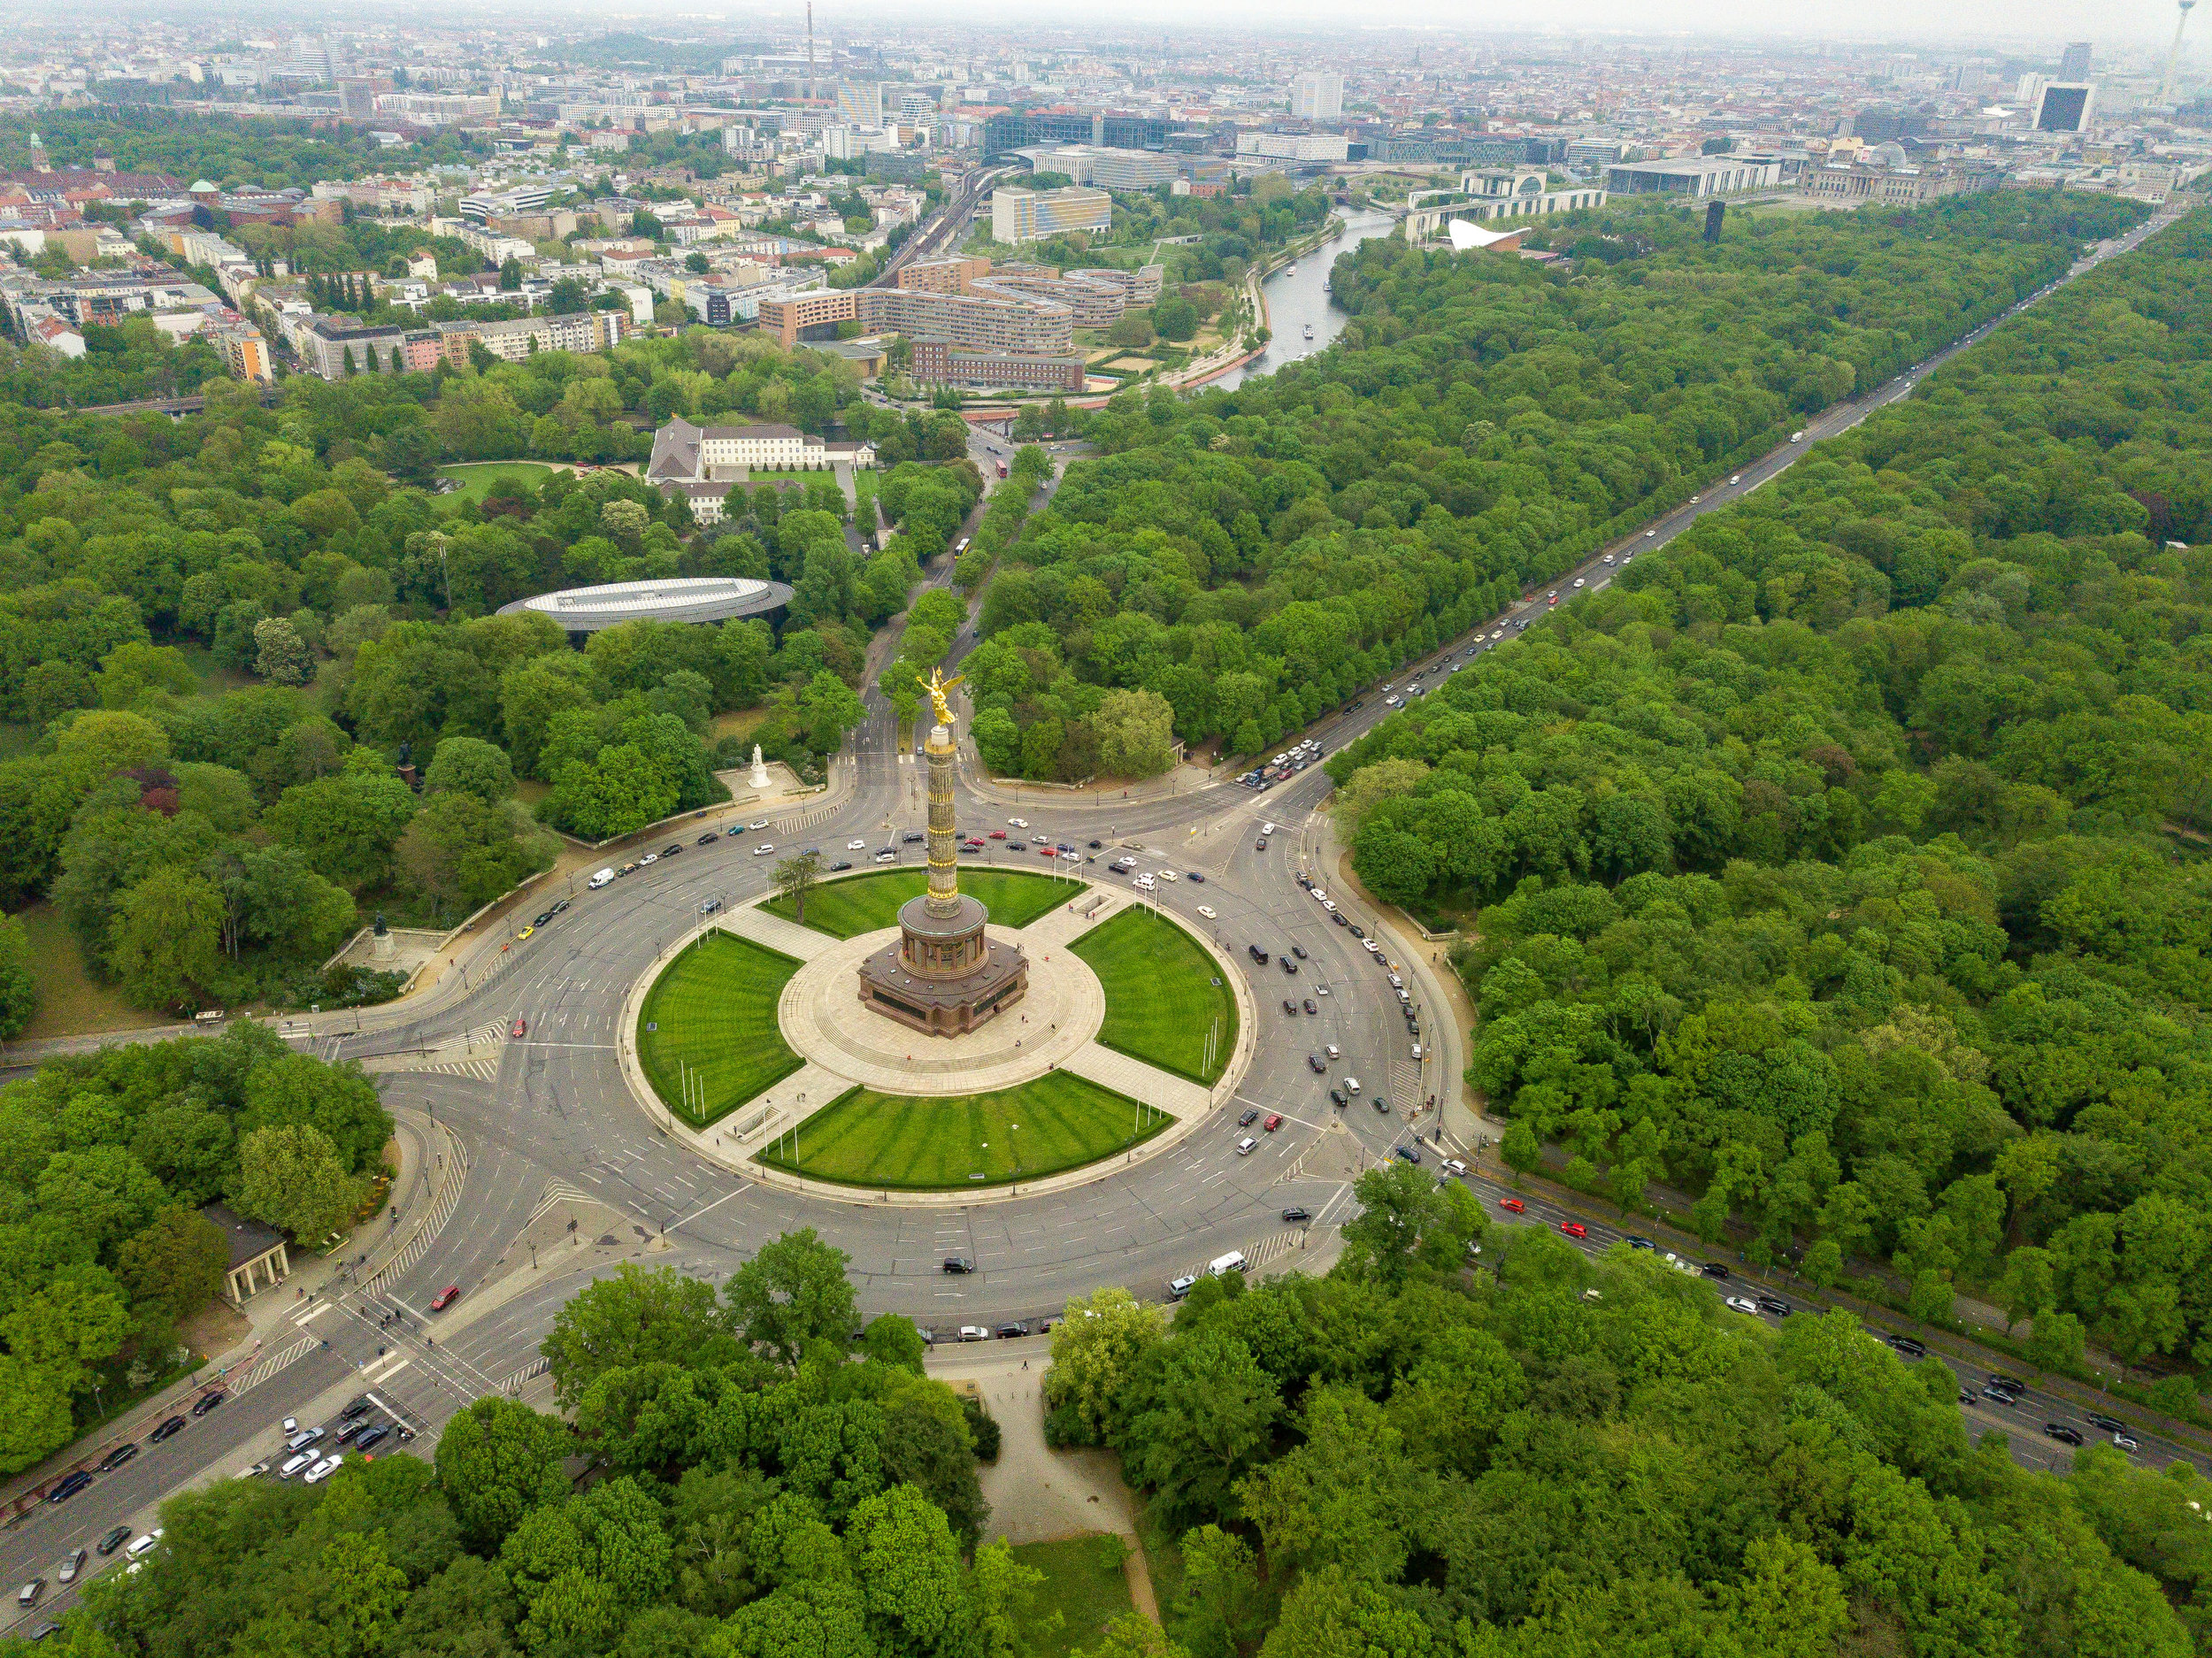 Aerial view of the Victor Column and Tiergarten Park